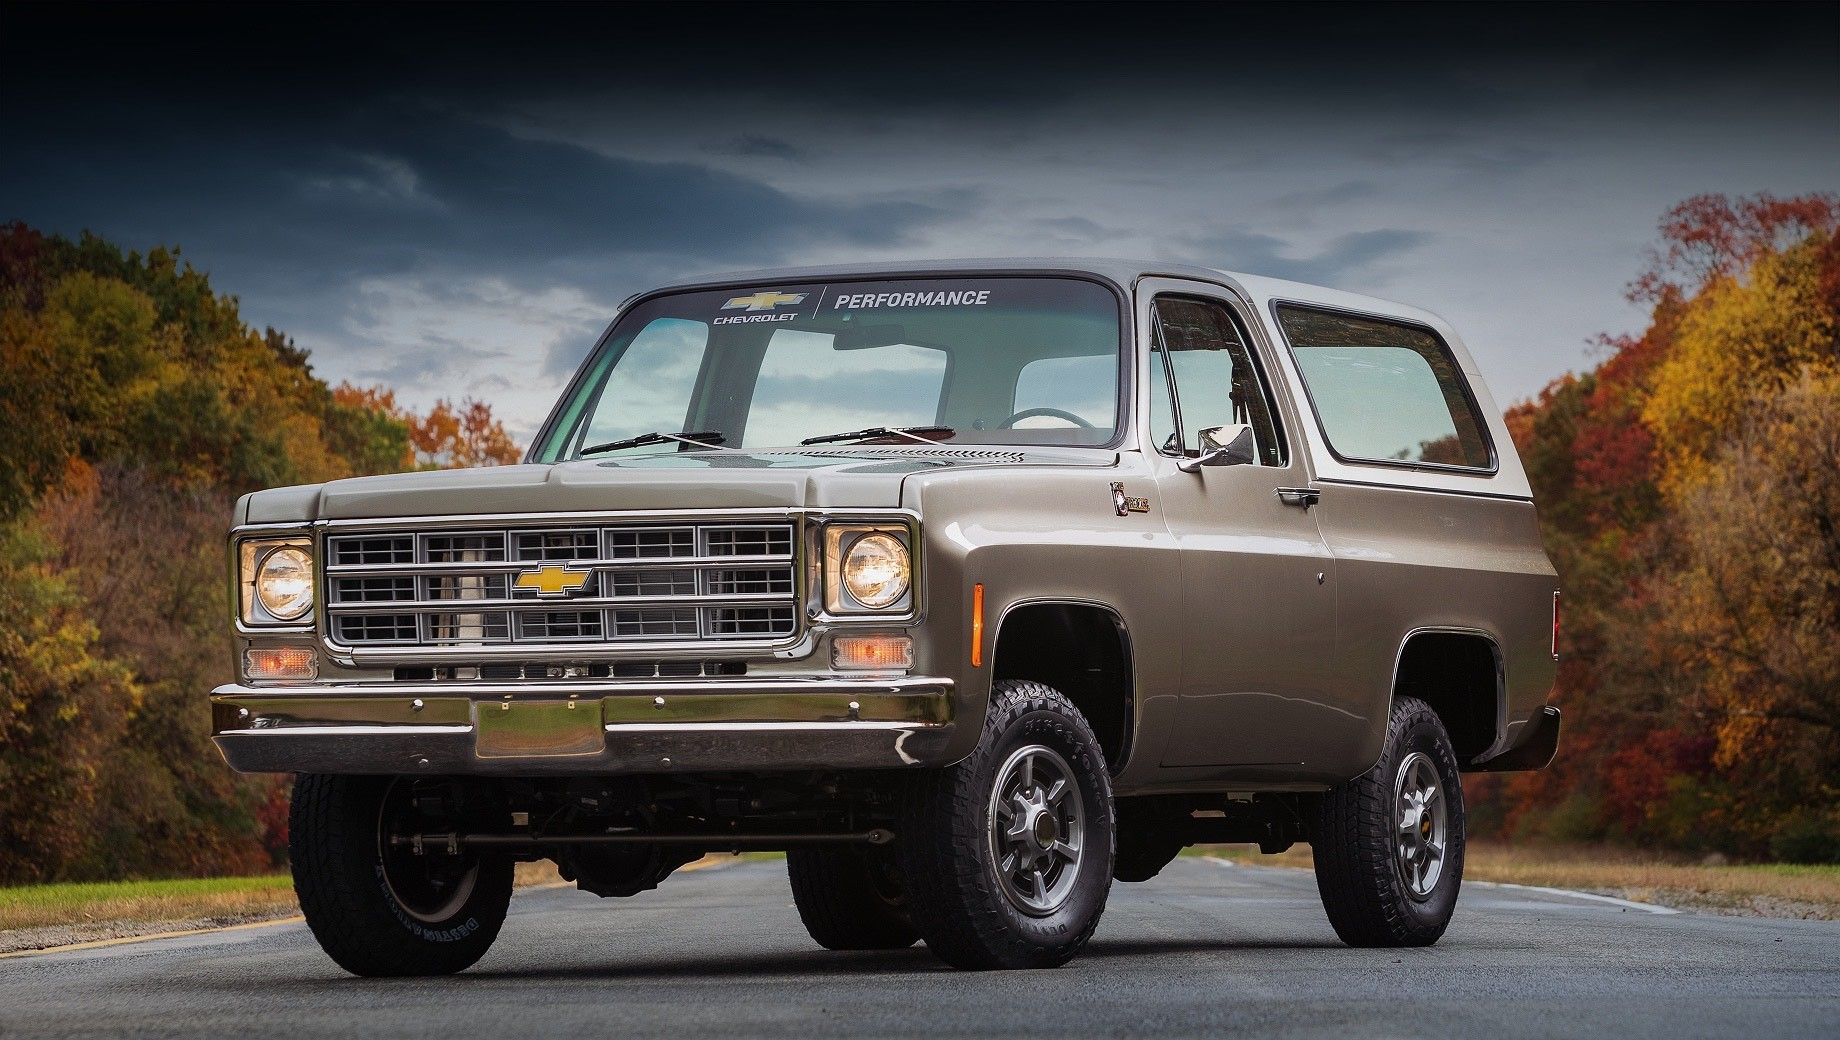 Chevrolet Performance has carried out quite a transplantation recently, swapping an old Chevy K5 Blazer to electric power. The car will debut in its full glory at the upcoming SEMA360 online show.